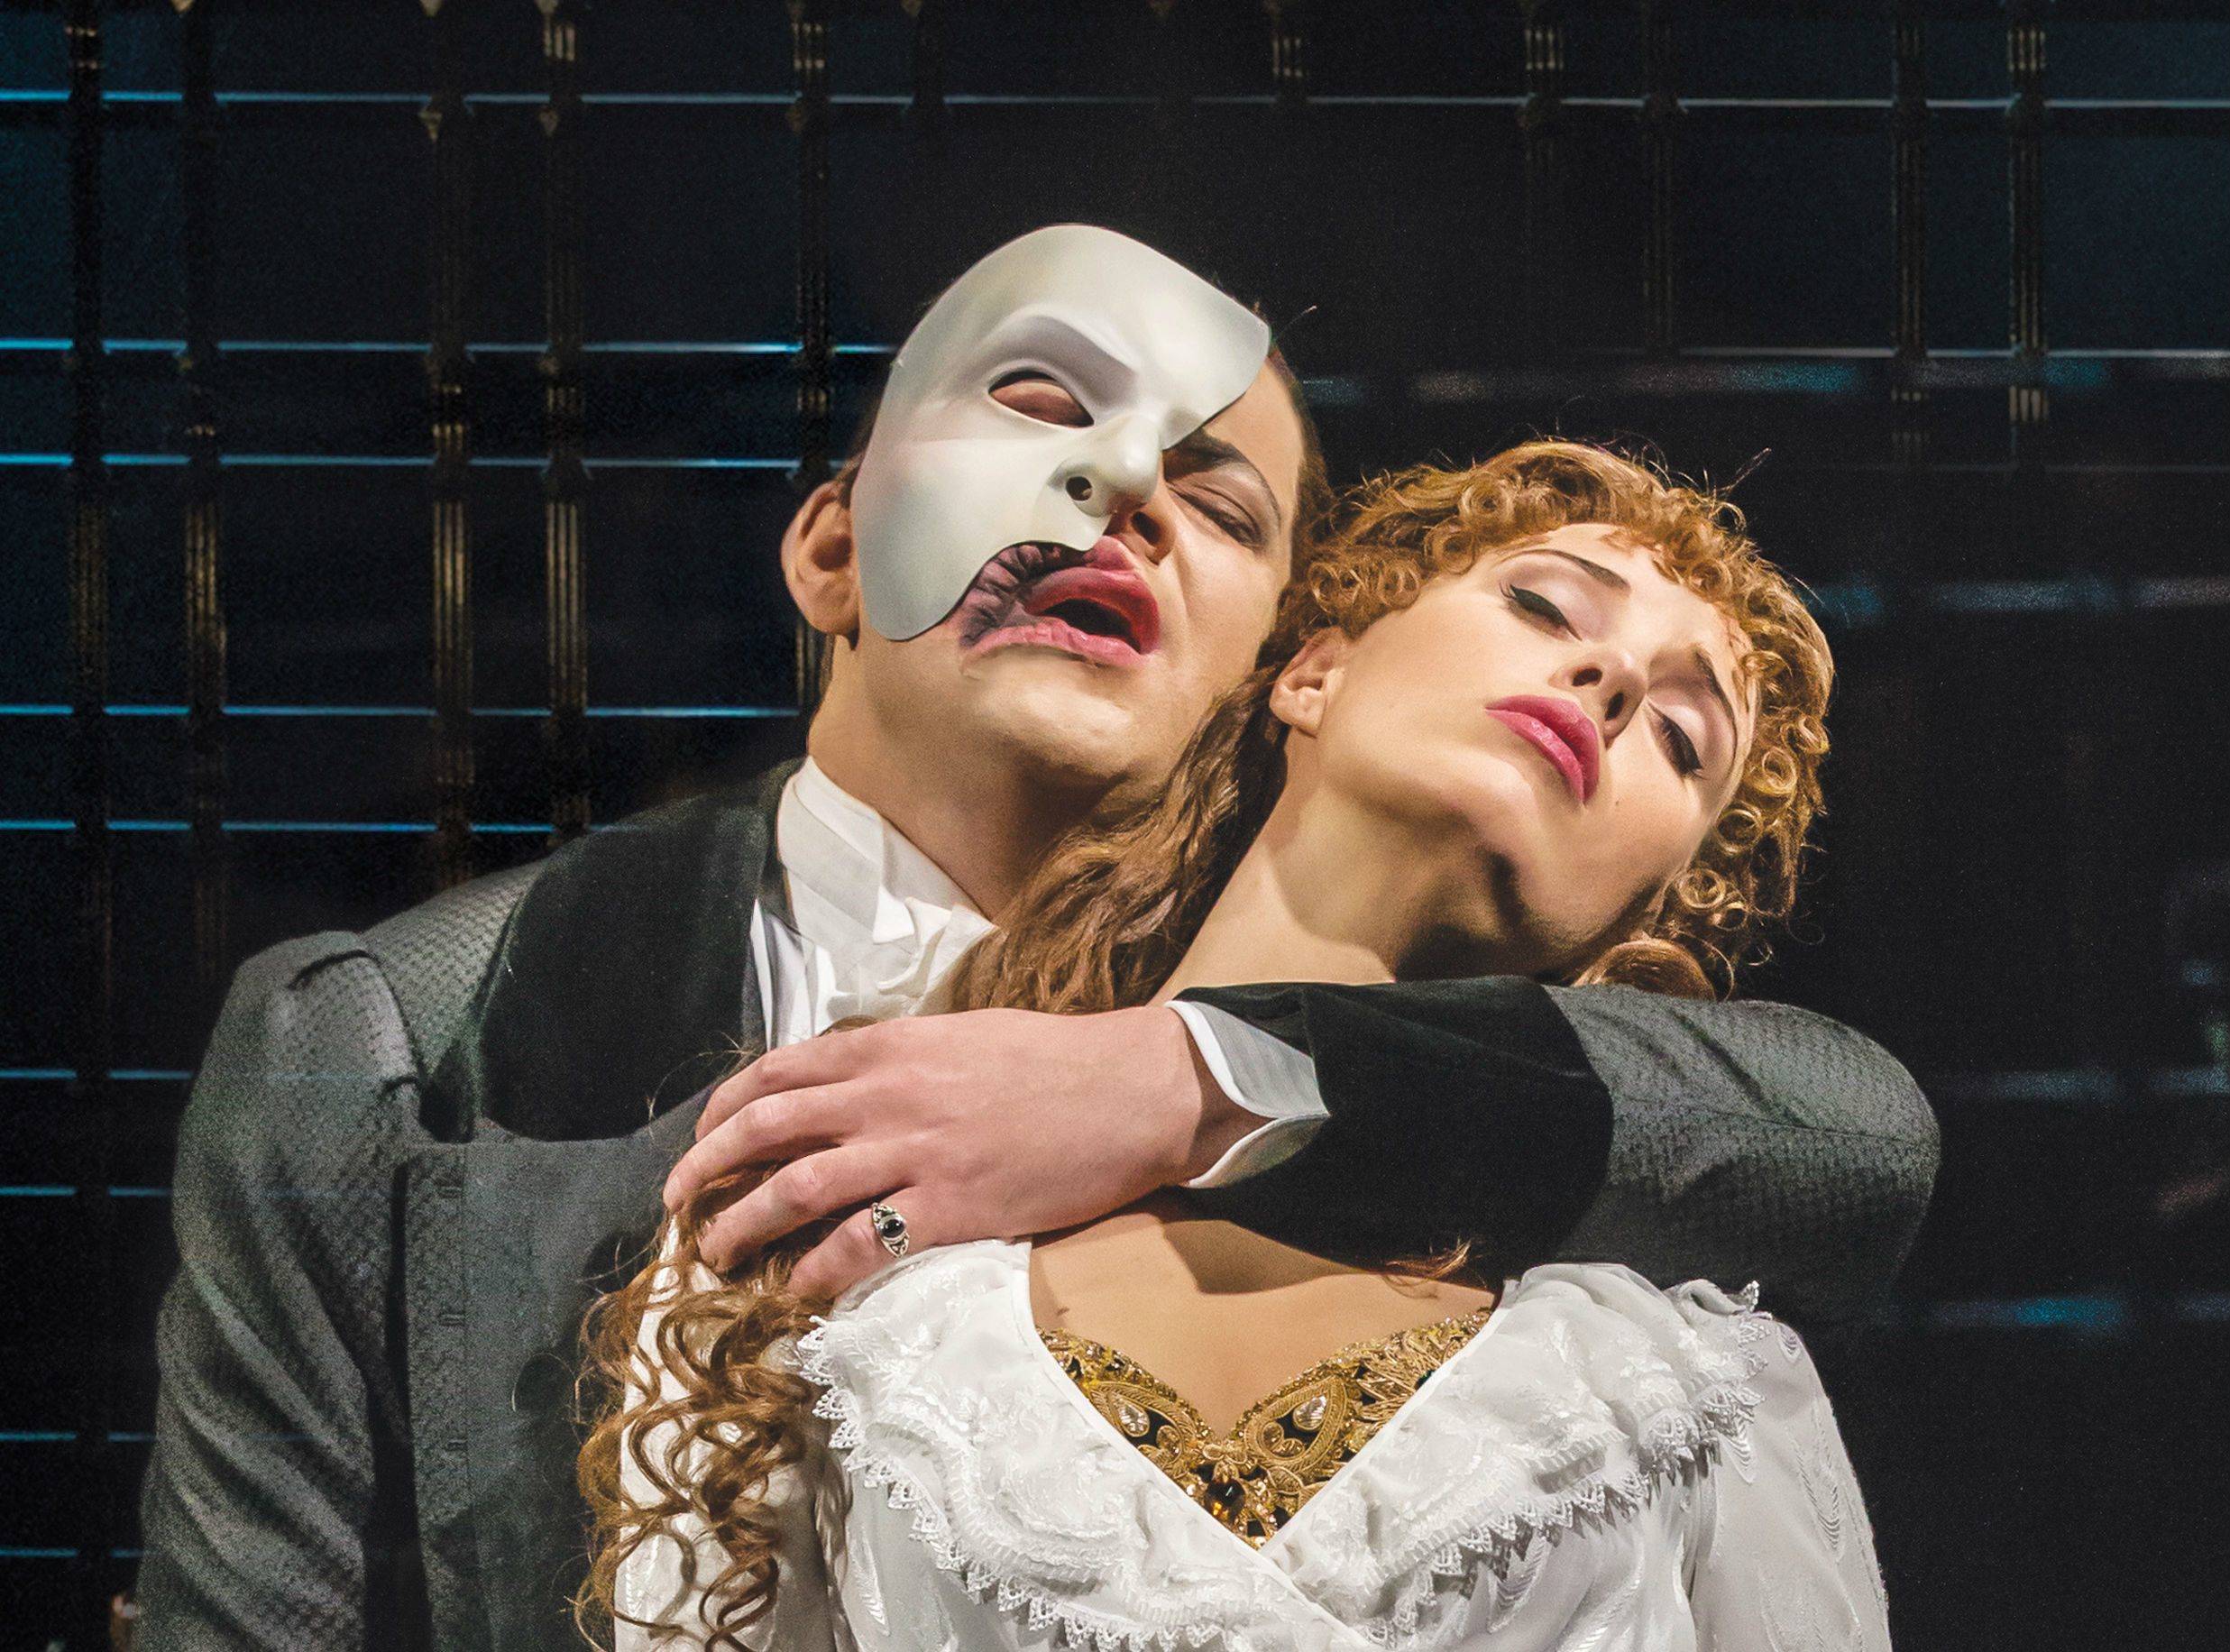 <p>Ben Forster and Celinde&nbsp;<span>Schoenmaker in 'The Phantom of the Opera'</span></p>